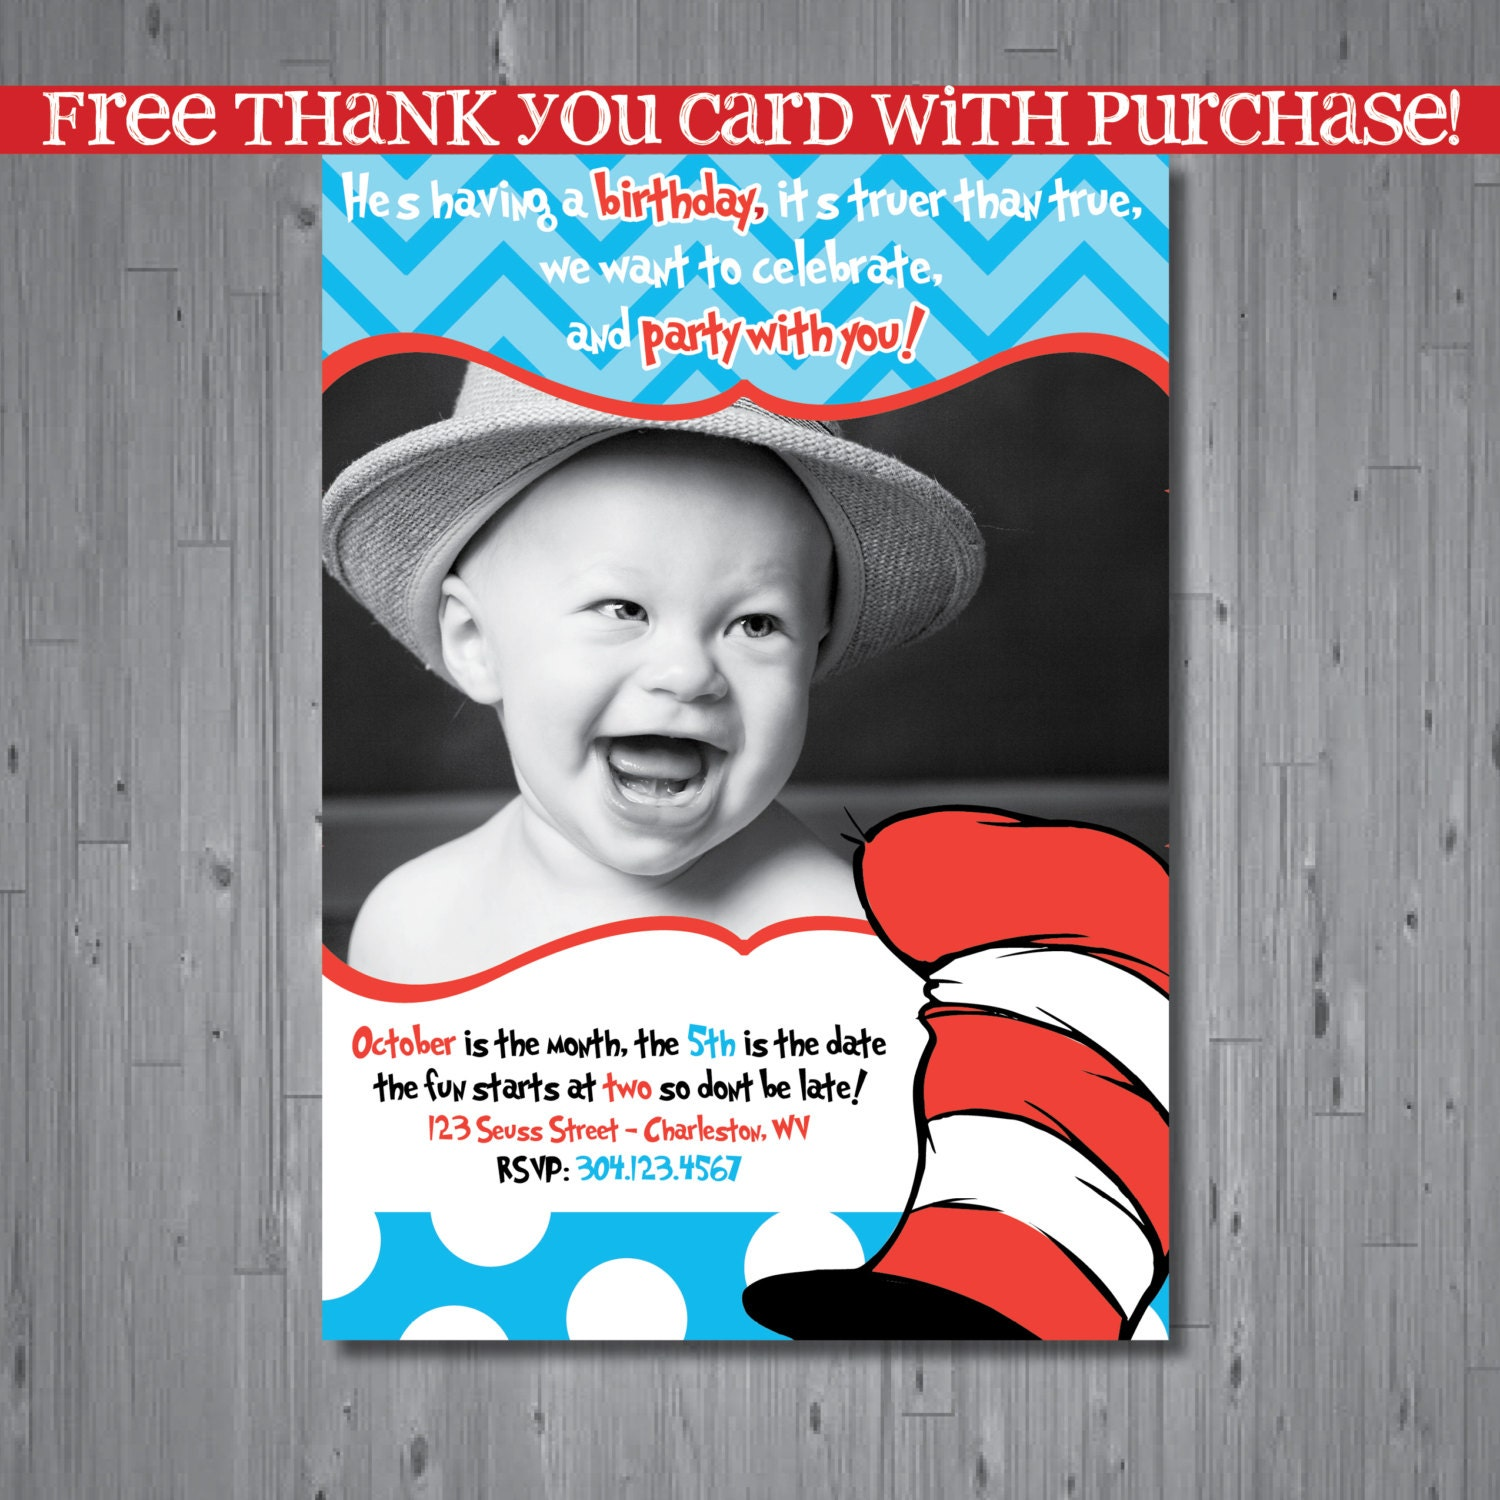 Dr Seuss 1St Birthday Invitations and get inspiration to create nice invitation ideas